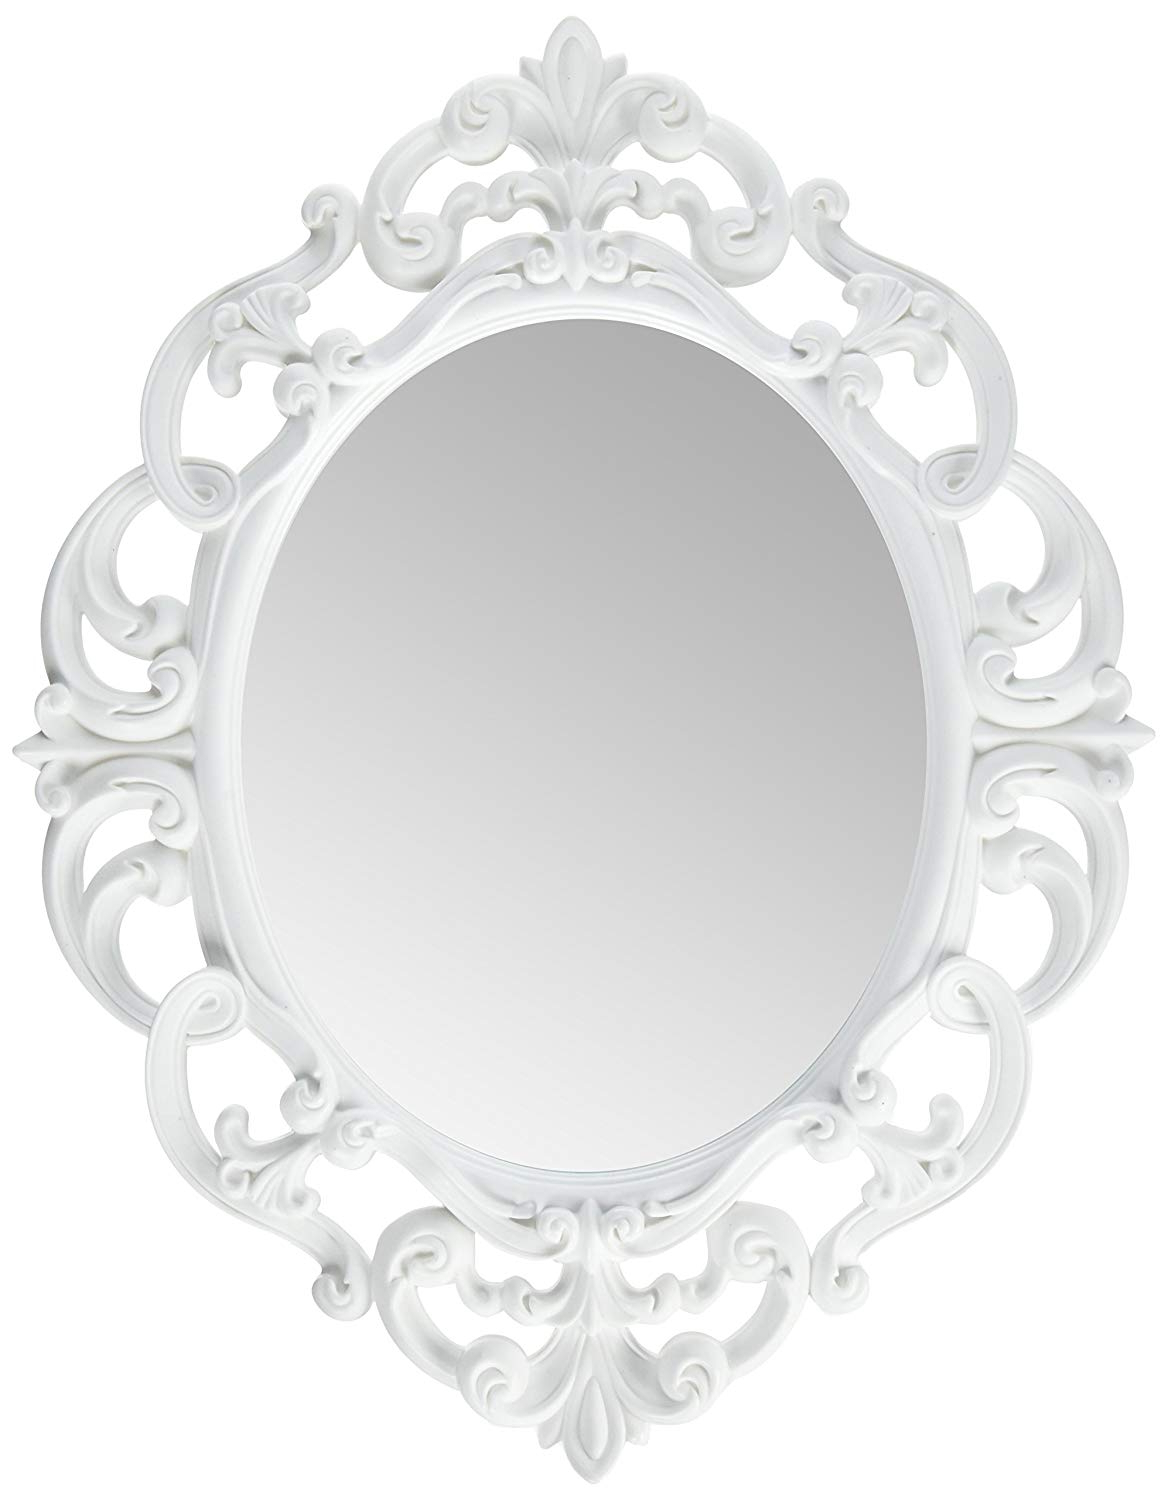 White Frame Wall Mirrors Inside Preferred Kole White Oval Vintage Wall Mirror (View 15 of 20)